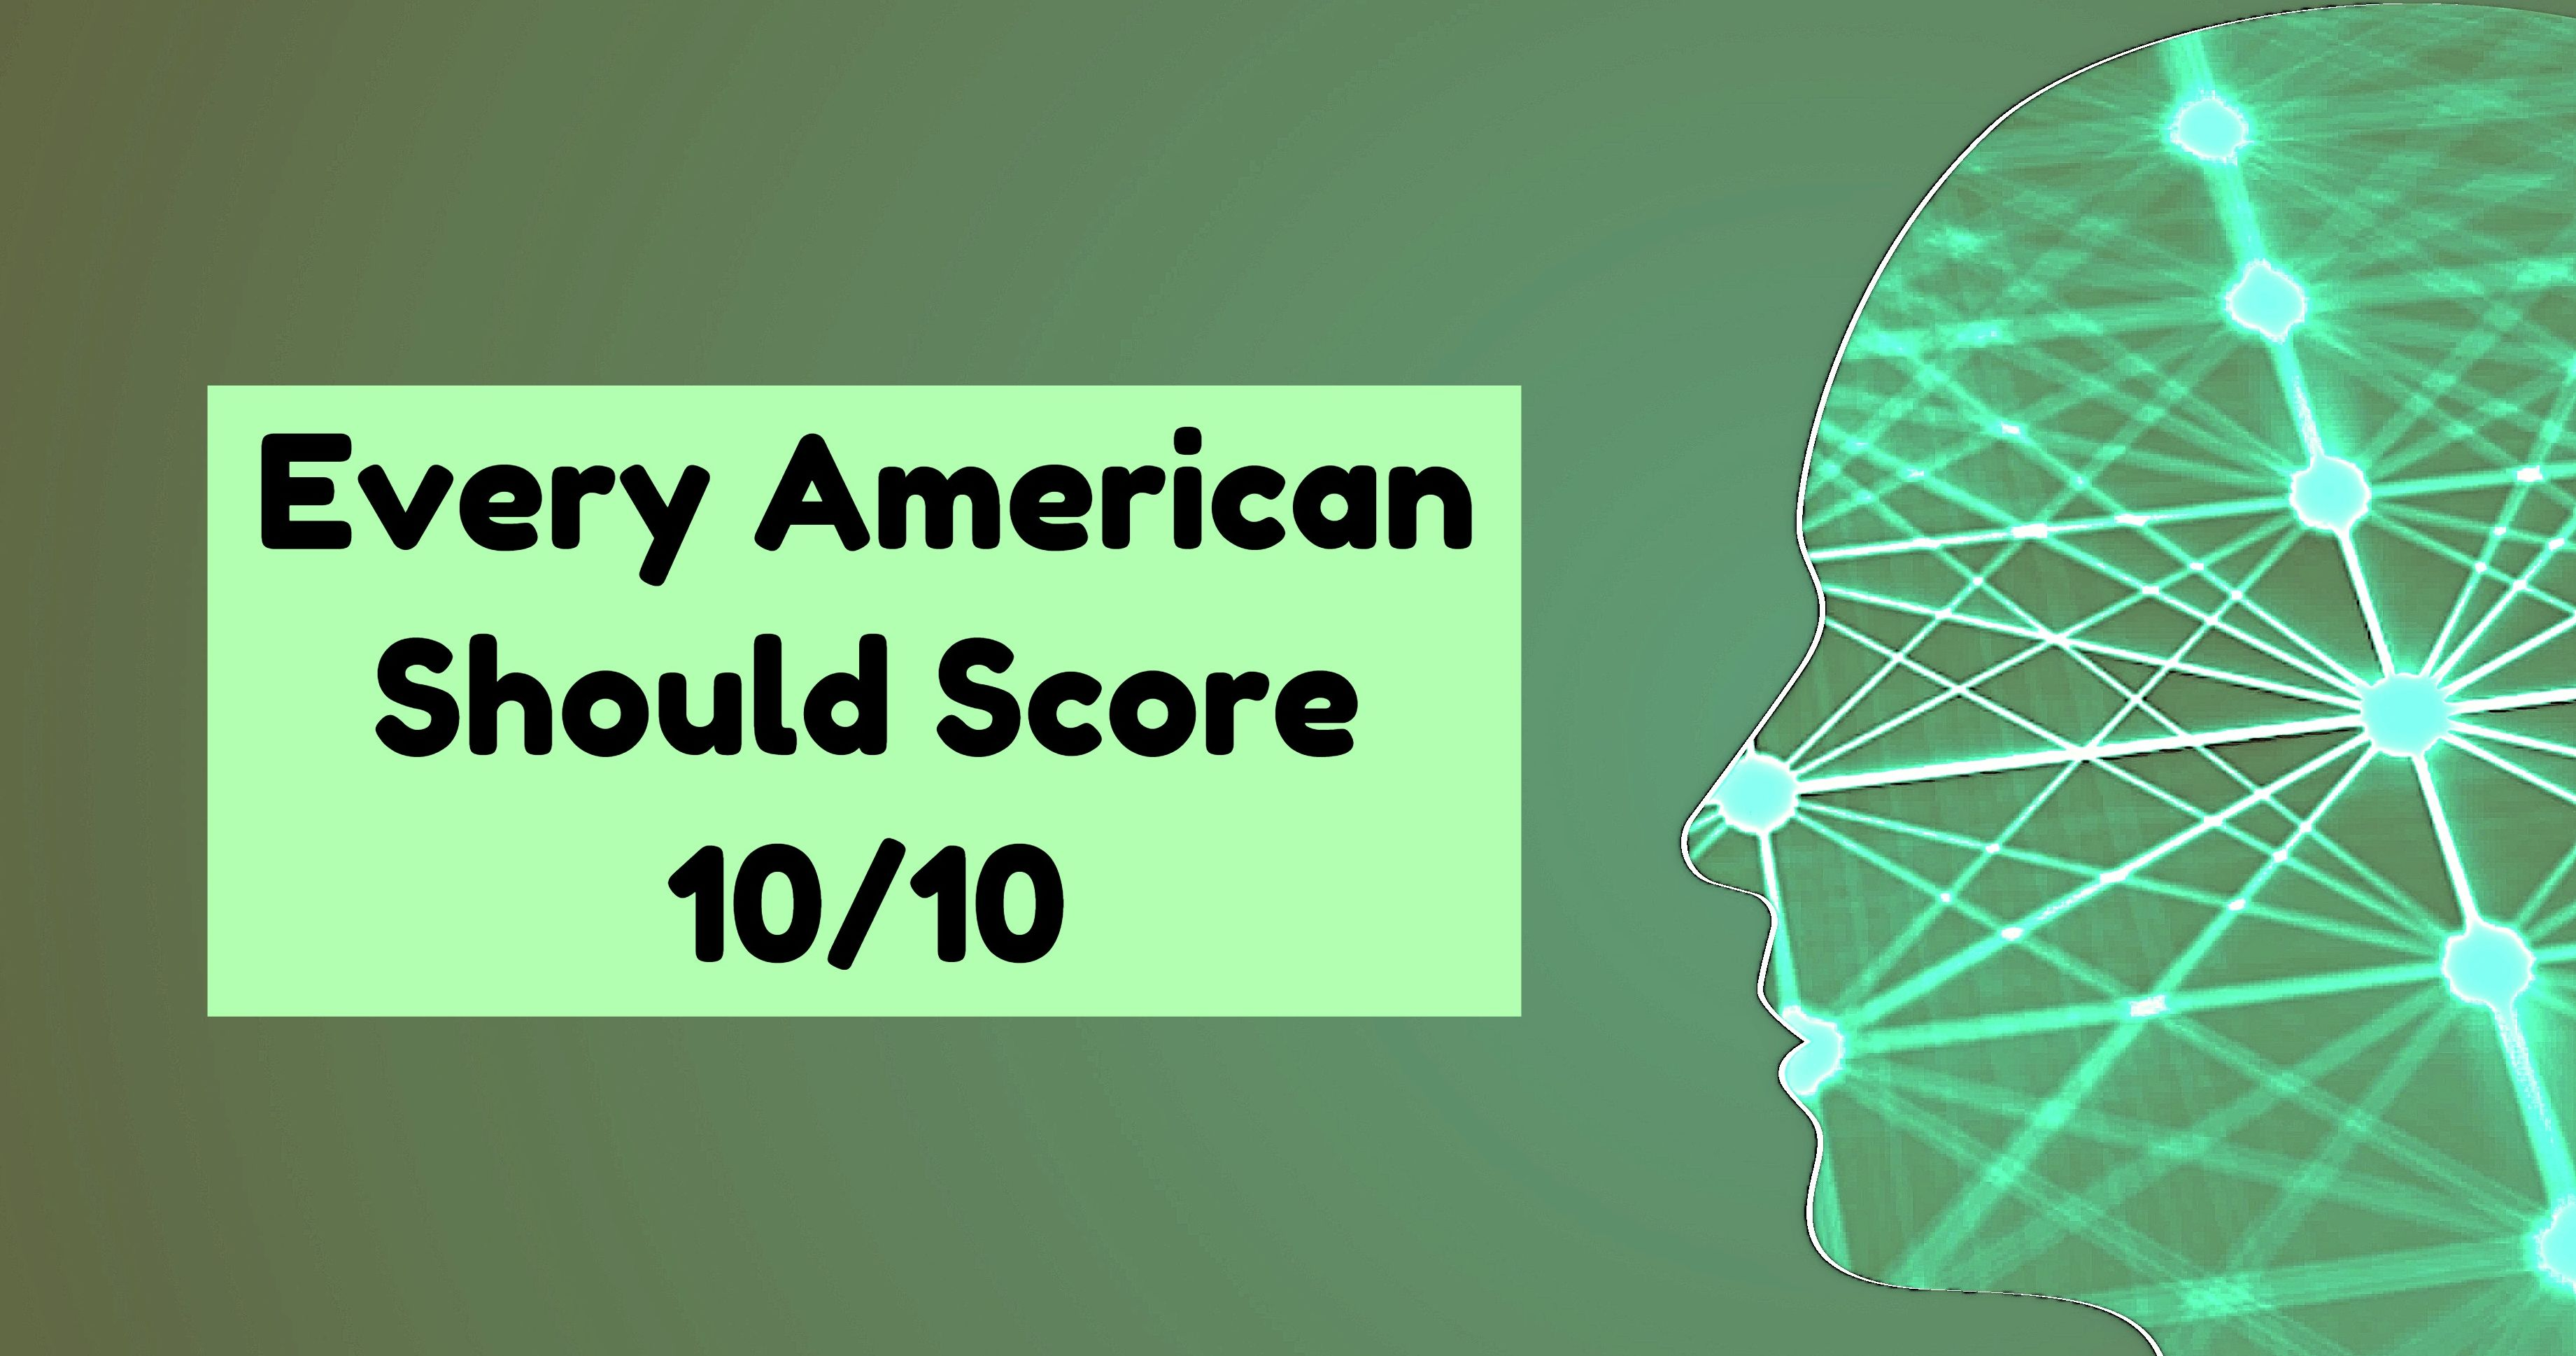 Every American Should Score 10/10 In This Quiz